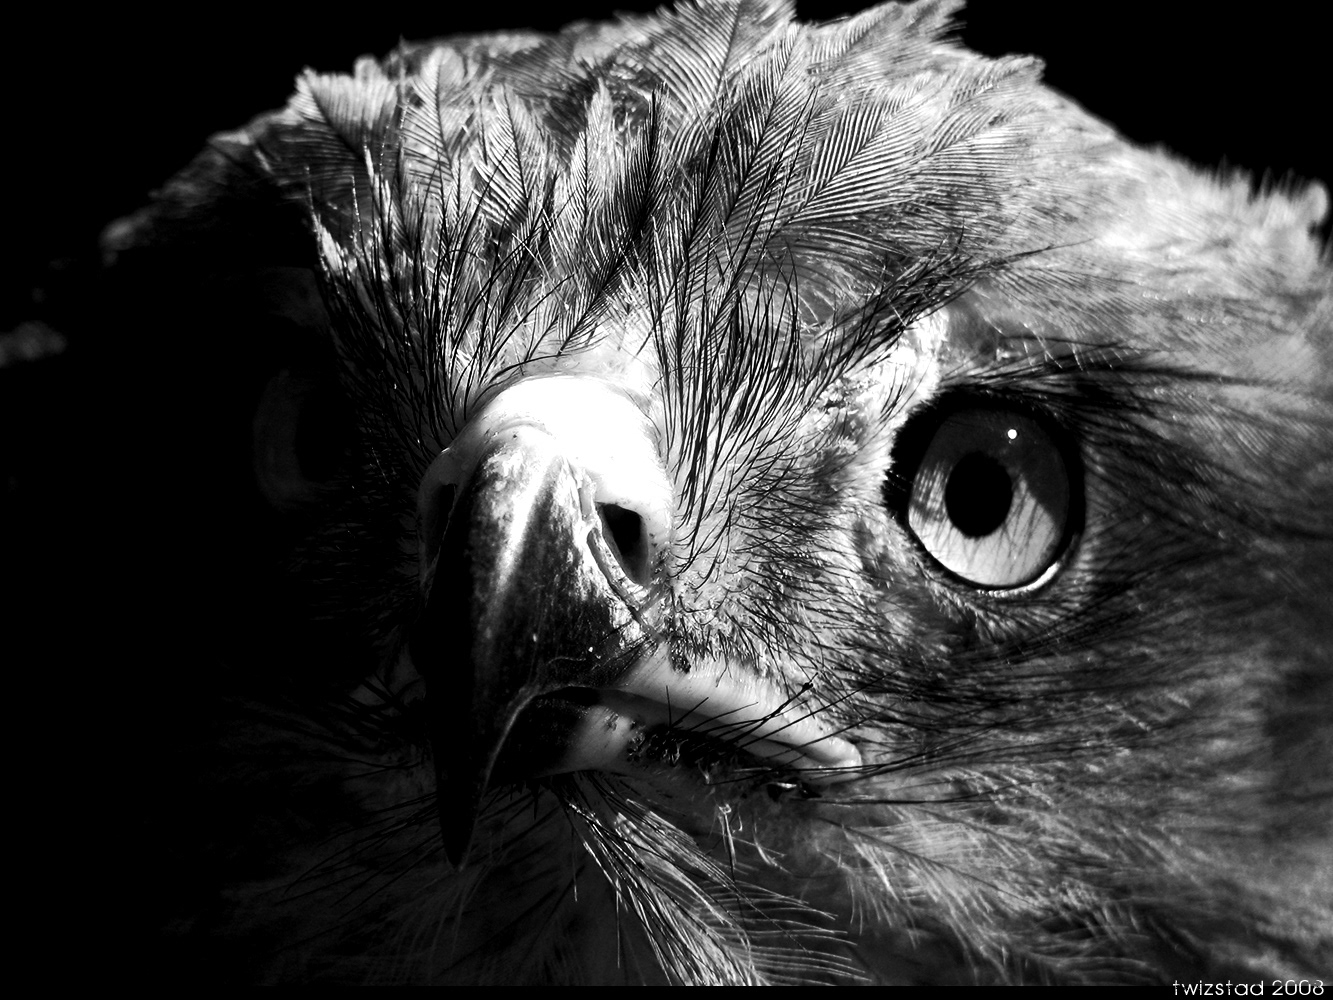 Some black and white eagle photos i took way back when